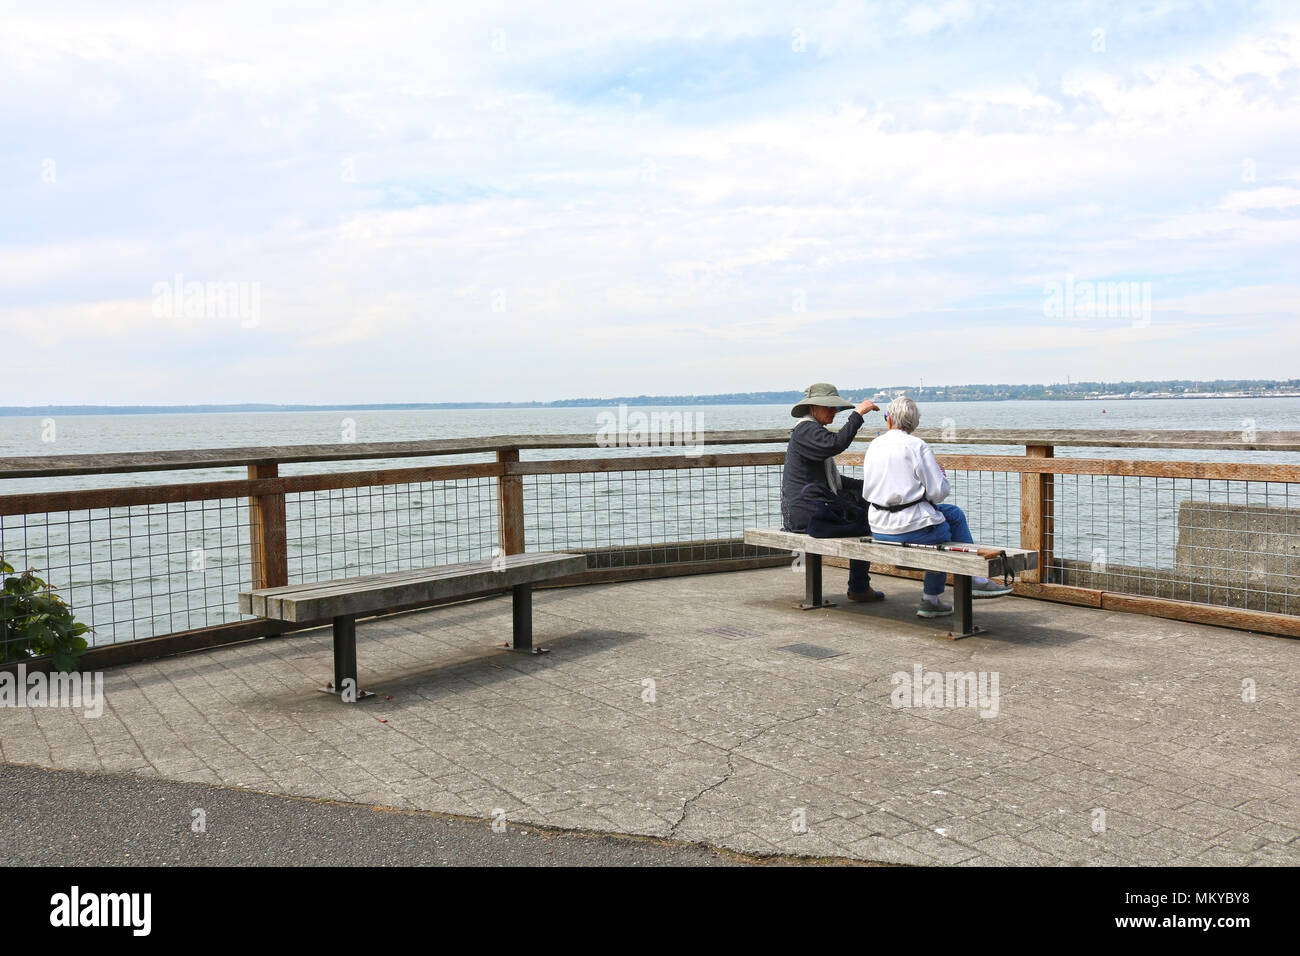 Two senior women sitting on a bench close to the railing at Boulevard Park in Bellingham, WA, USA. - Stock Image